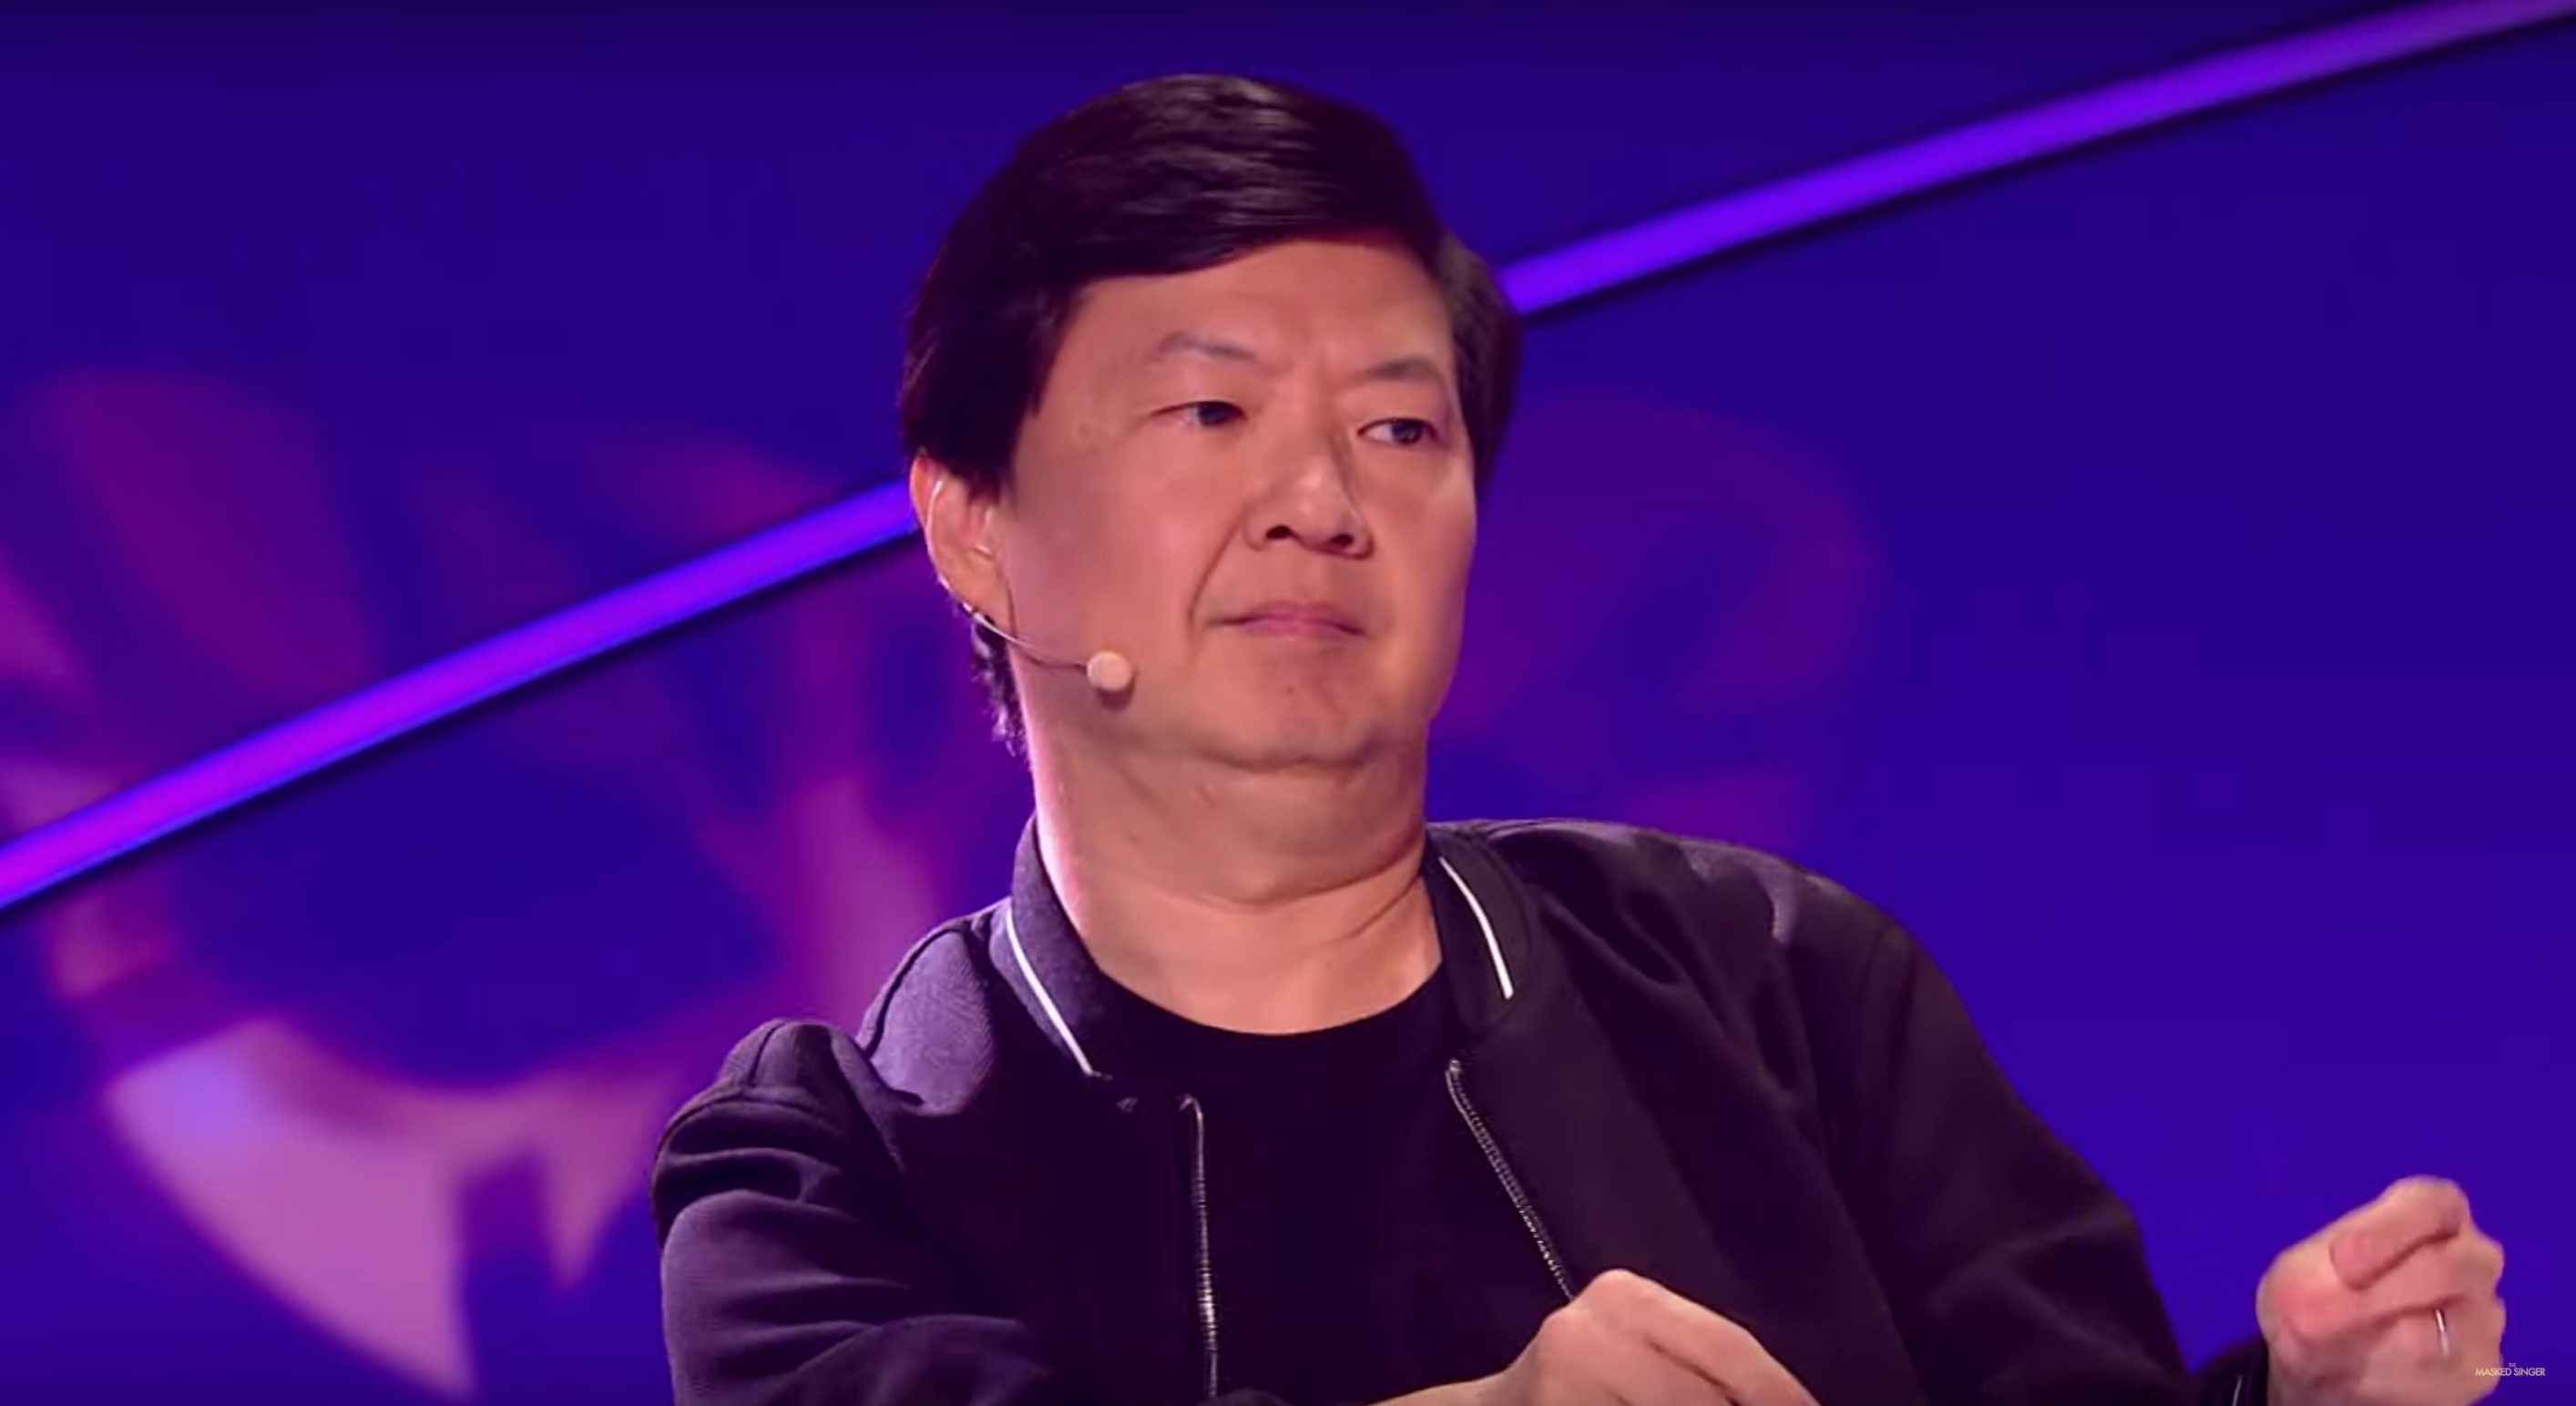 Masked Singer viewers brand panellist Ken Jeong 'annoying' and 'unfunny' after launch episode